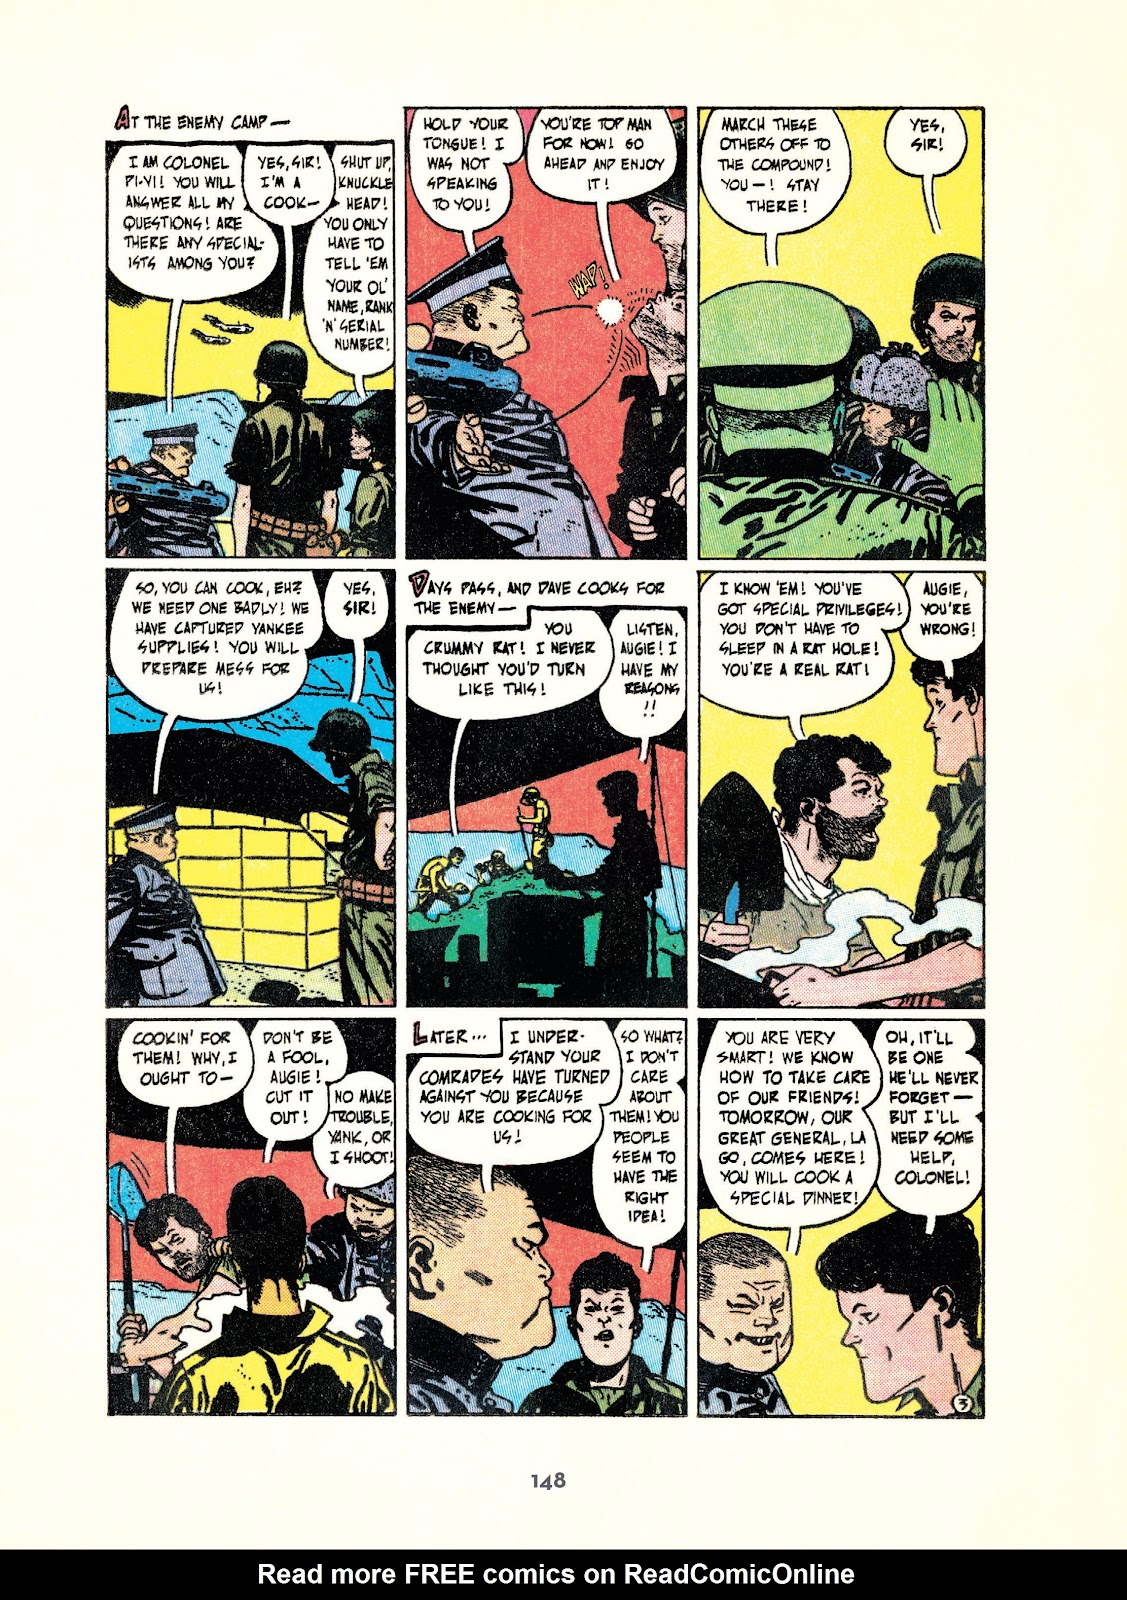 Read online Setting the Standard: Comics by Alex Toth 1952-1954 comic -  Issue # TPB (Part 2) - 49